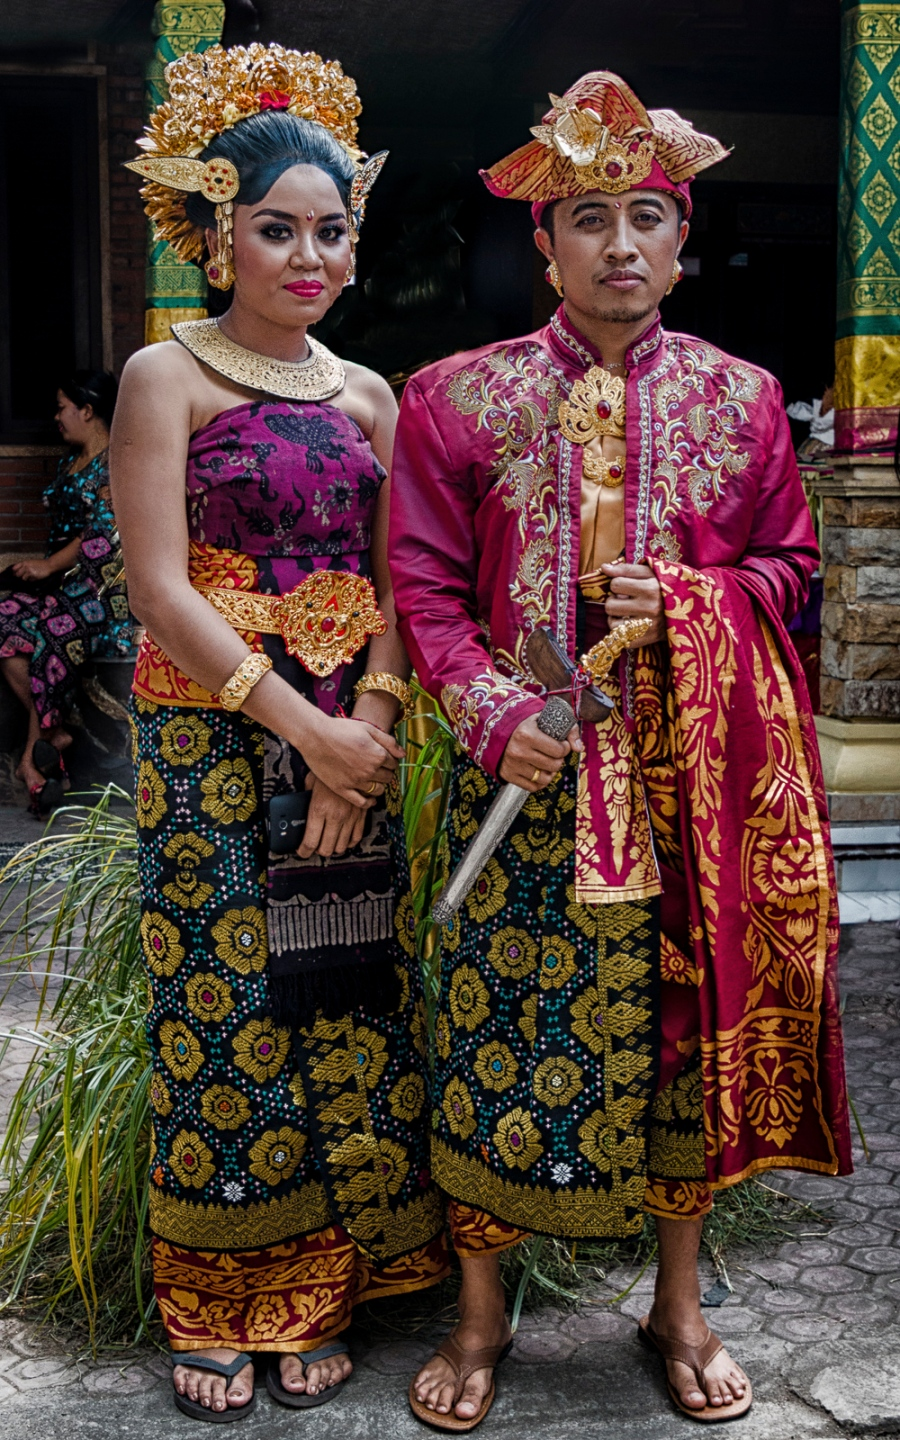 Arya & Dewi at Their Wedding Banquette Bali, Indonesia May 3, 2016